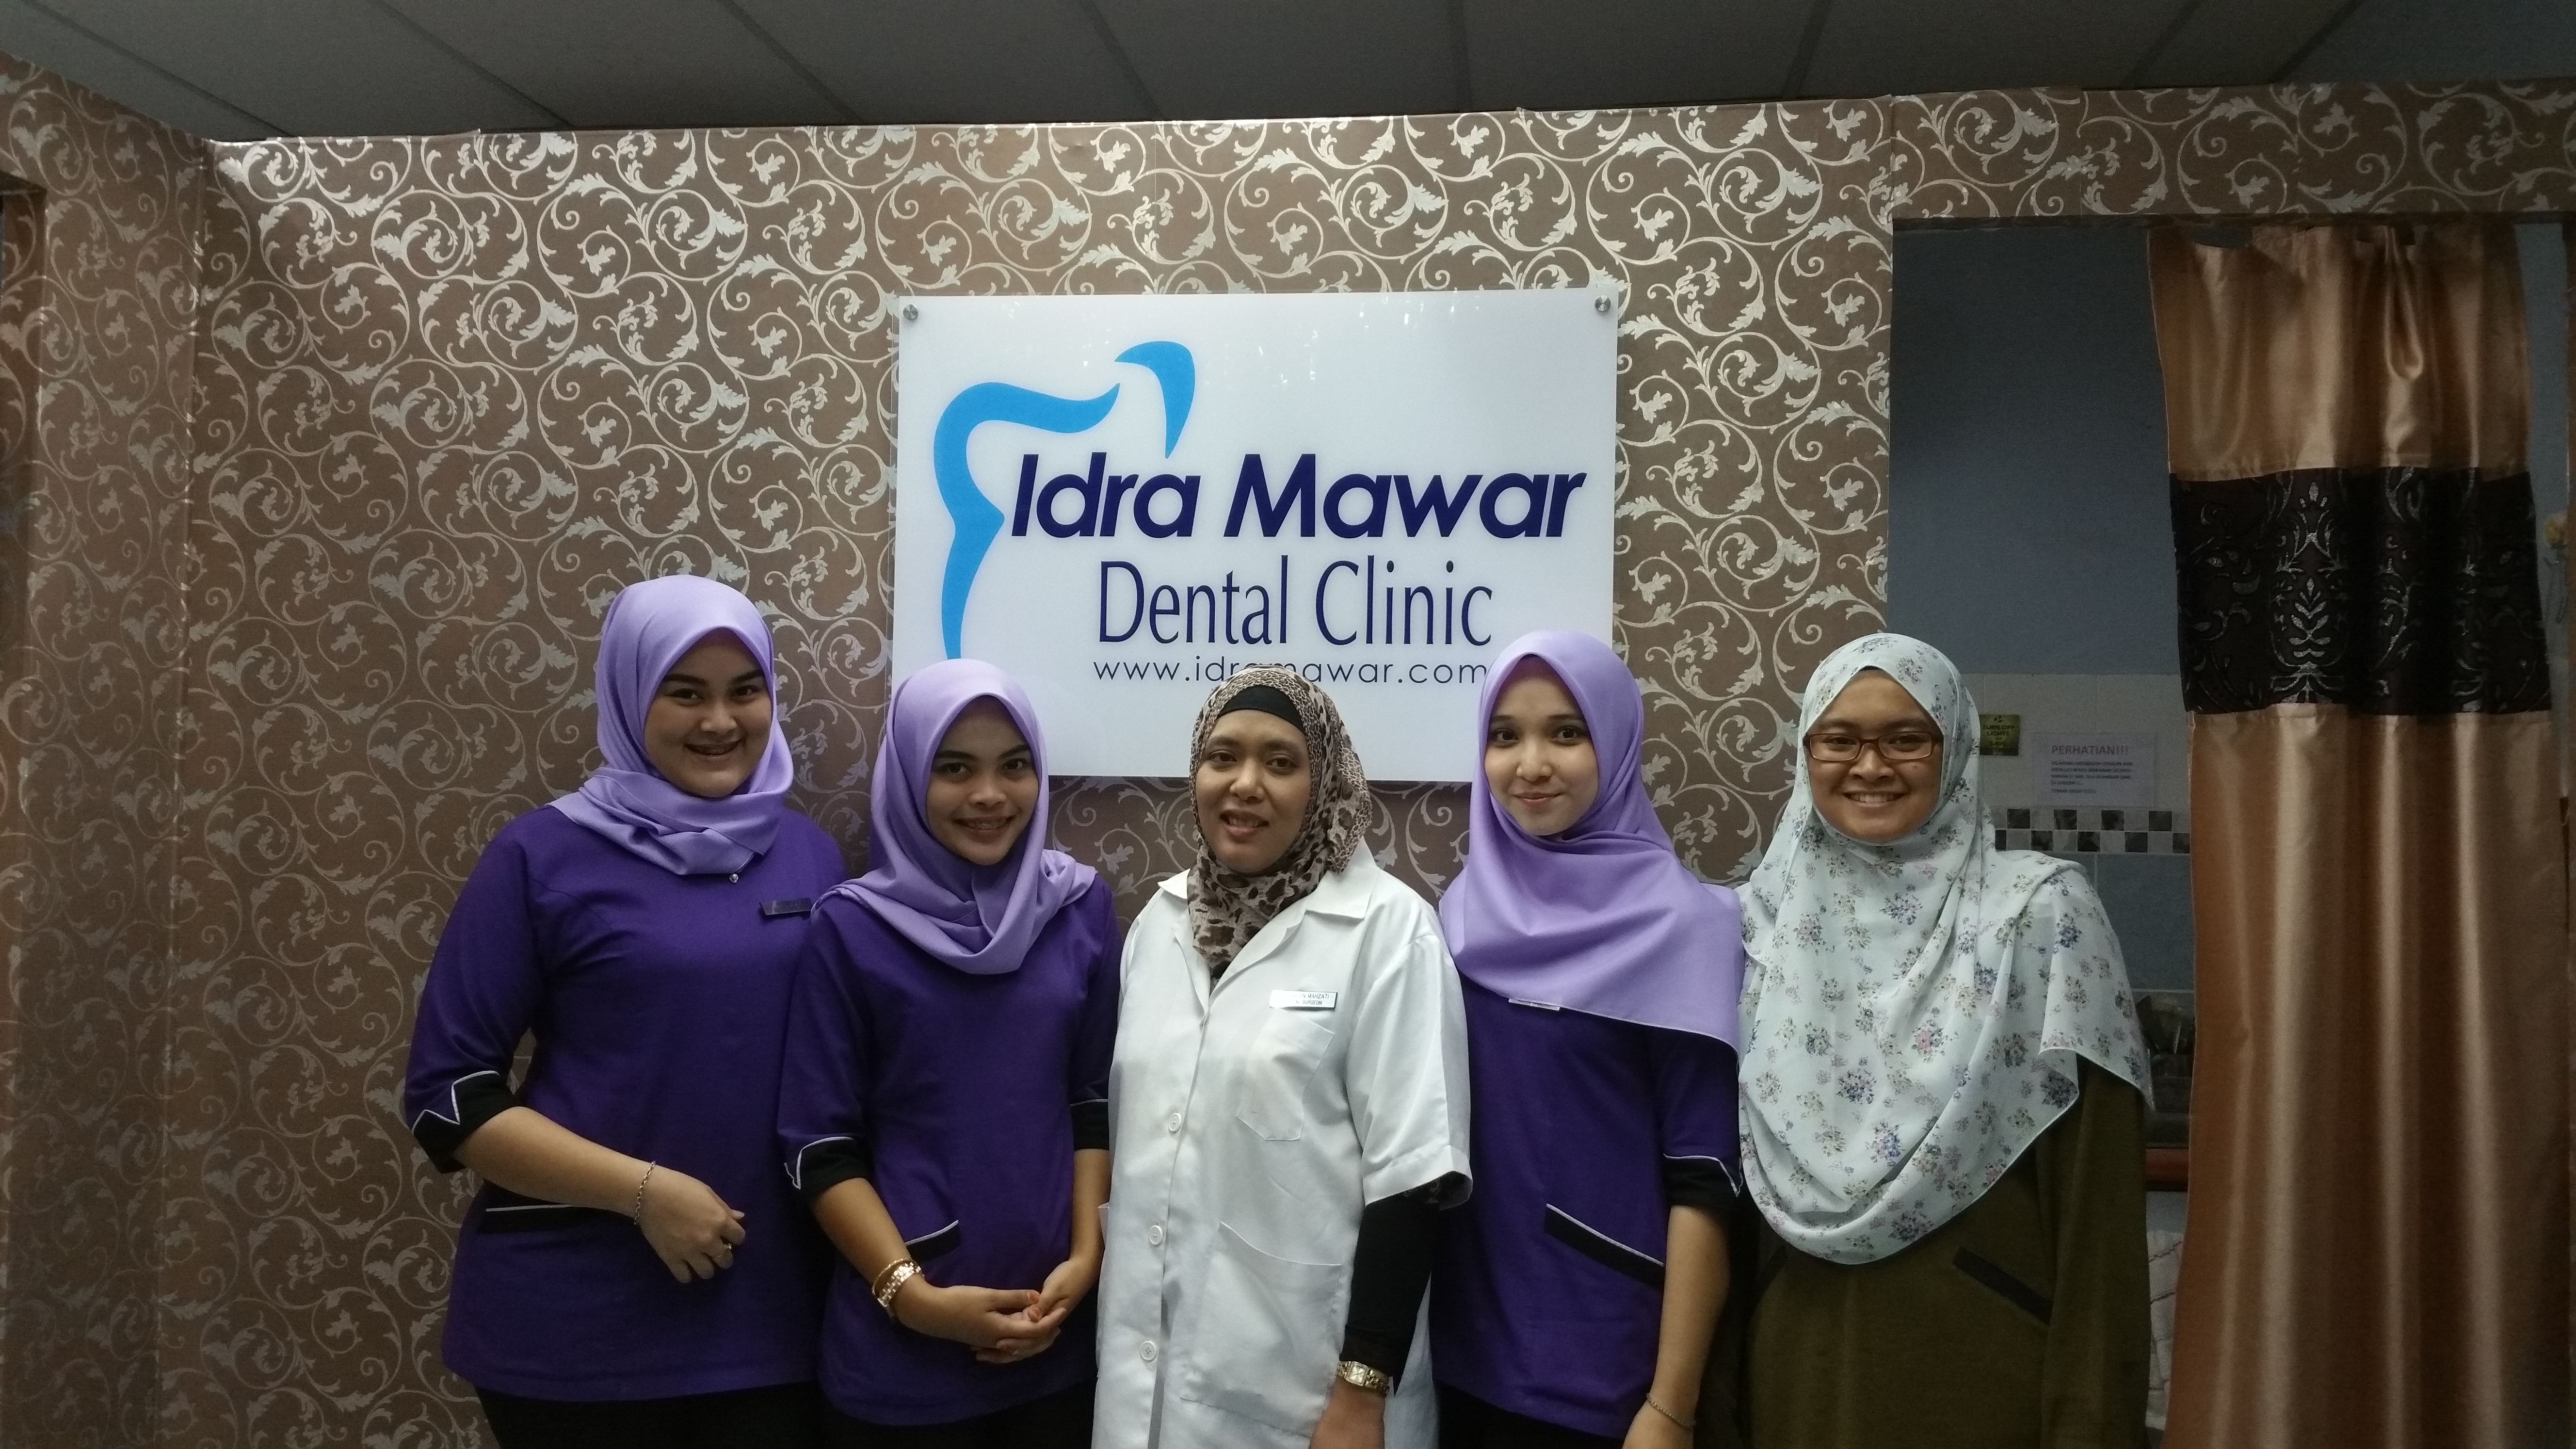 Idramawar Dental Clinic Clinic In Ampang Best Price Guaranteed # Muebles Kawana Curridabat